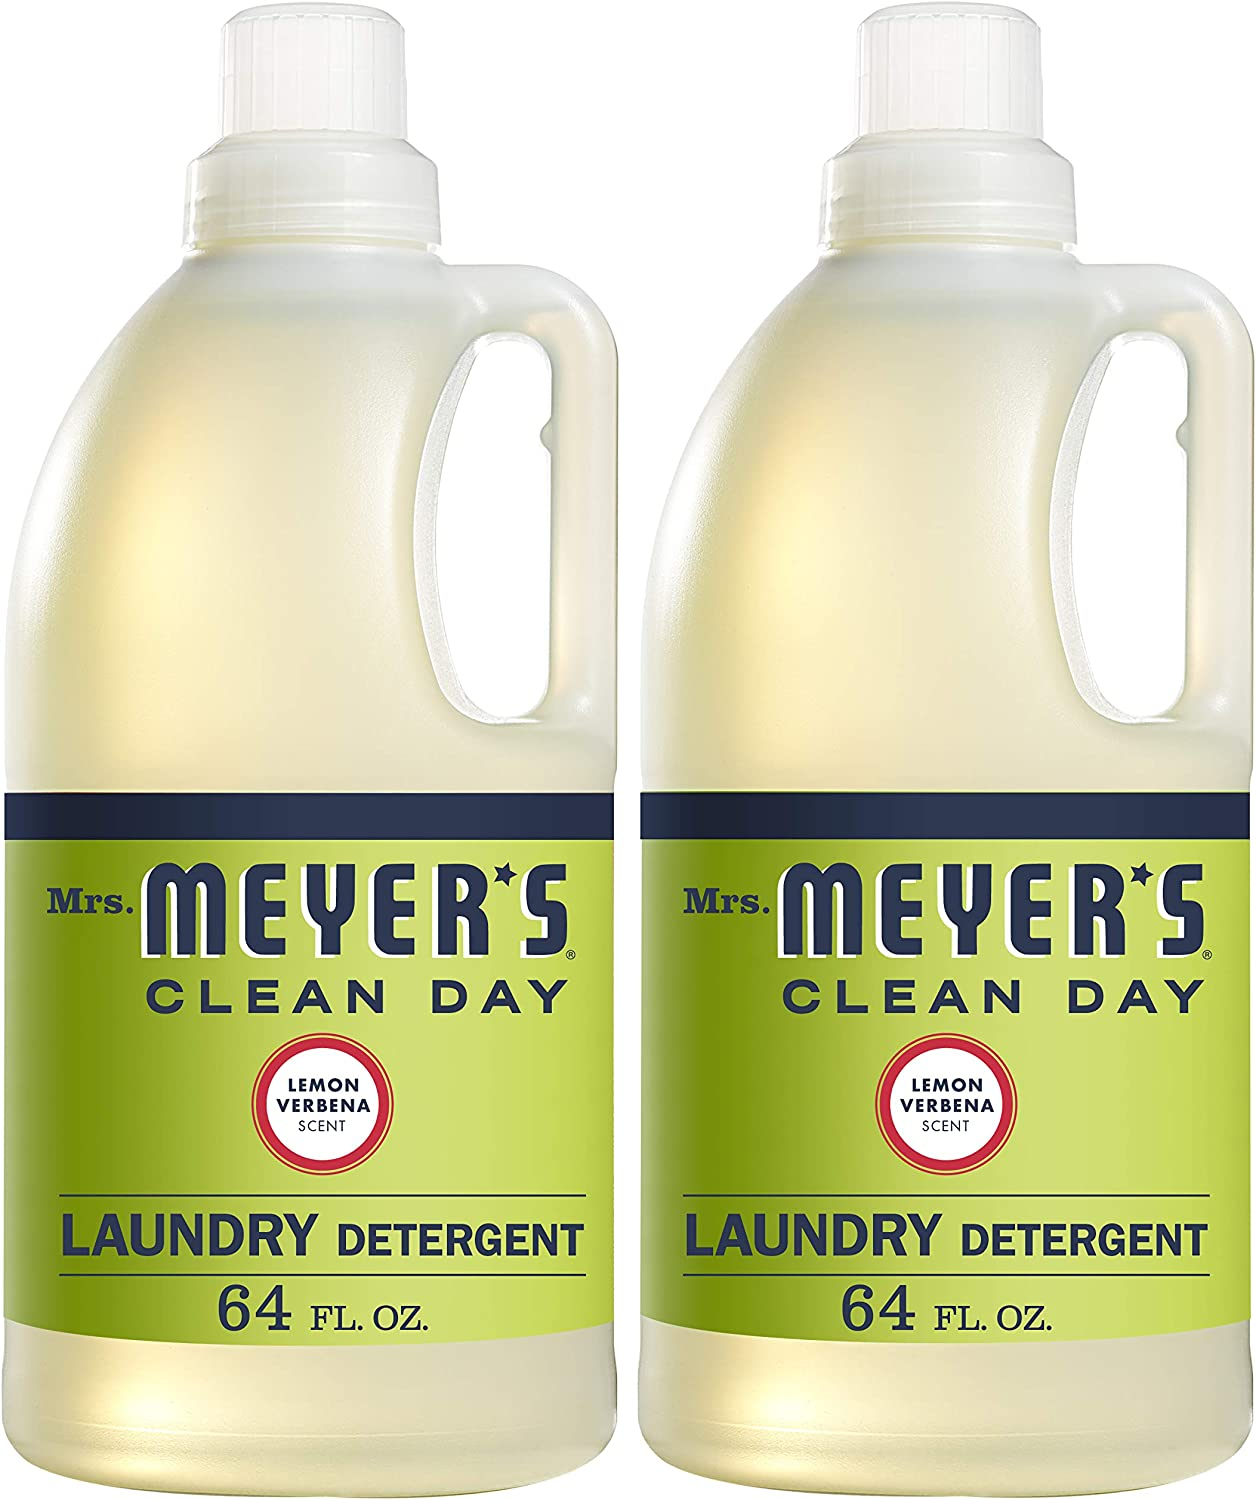 Mrs. Meyer's Clean Day Liquid Laundry Detergent, Cruelty Free and Biodegradable Formula, Lemon Verbena Scent, 64 oz- Pack of 2